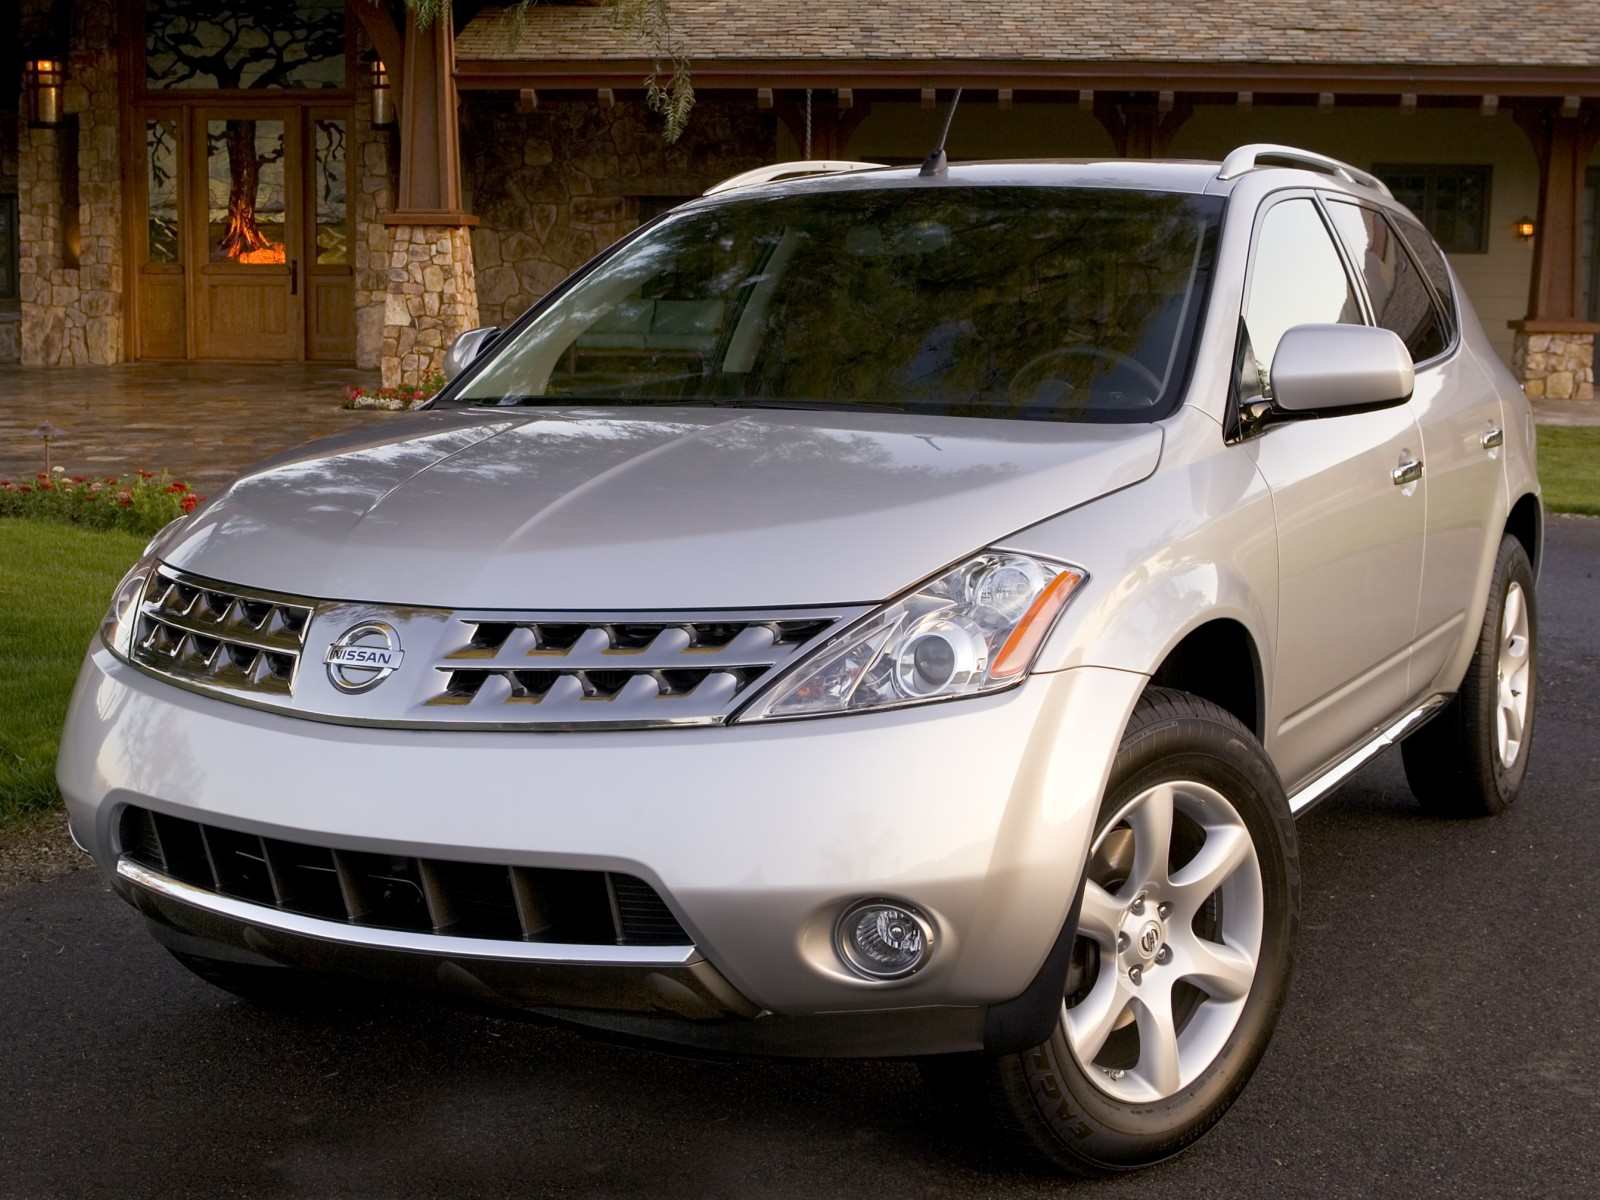 2007 nissan murano wallpapers pictures specifications interiors and exteriors images infinity. Black Bedroom Furniture Sets. Home Design Ideas